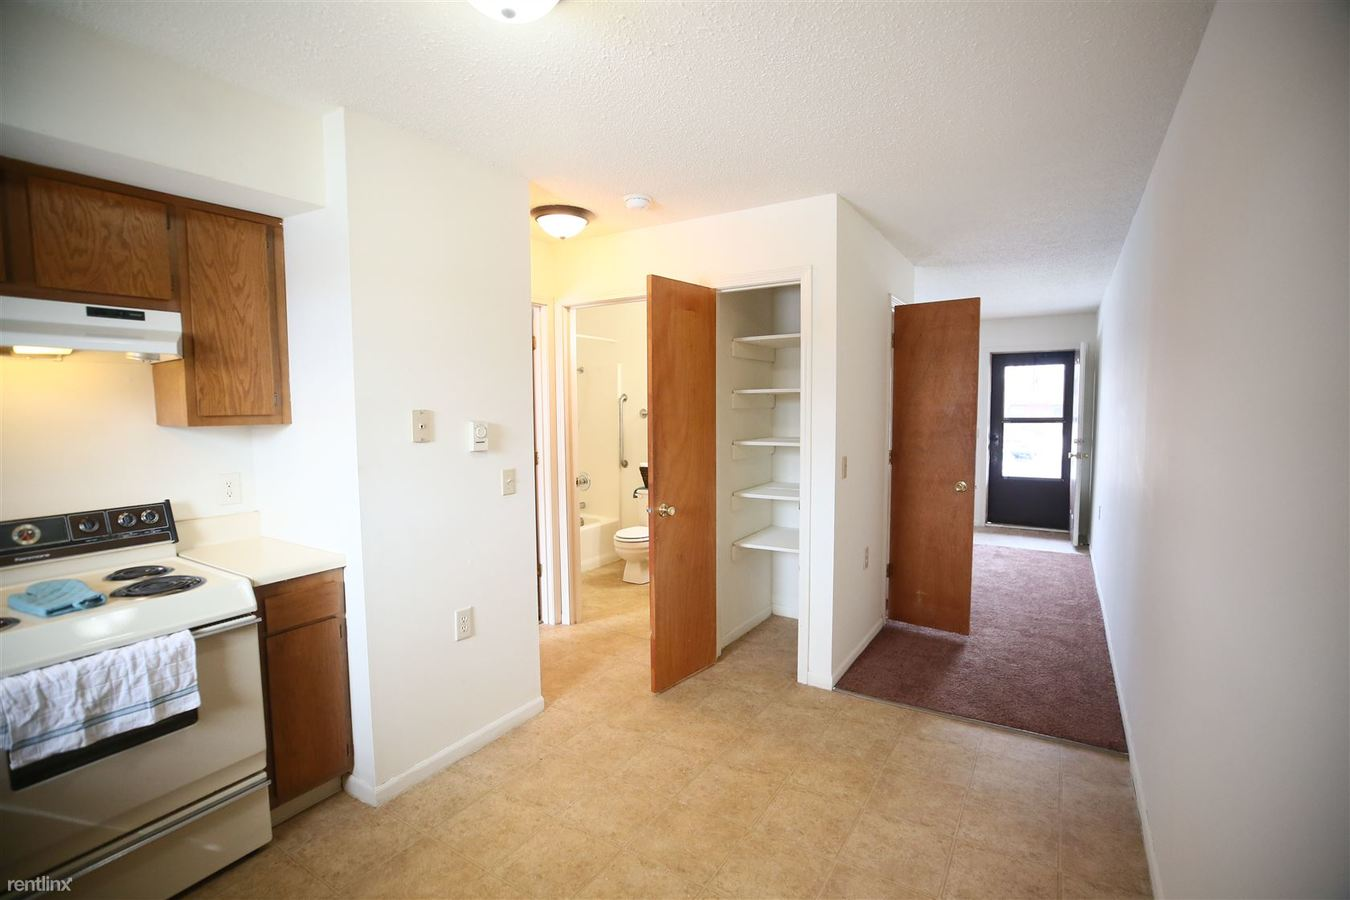 1 Bedroom 1 Bathroom Apartment for rent at Sunny Knoll Senior Apartments in Winchester, IN